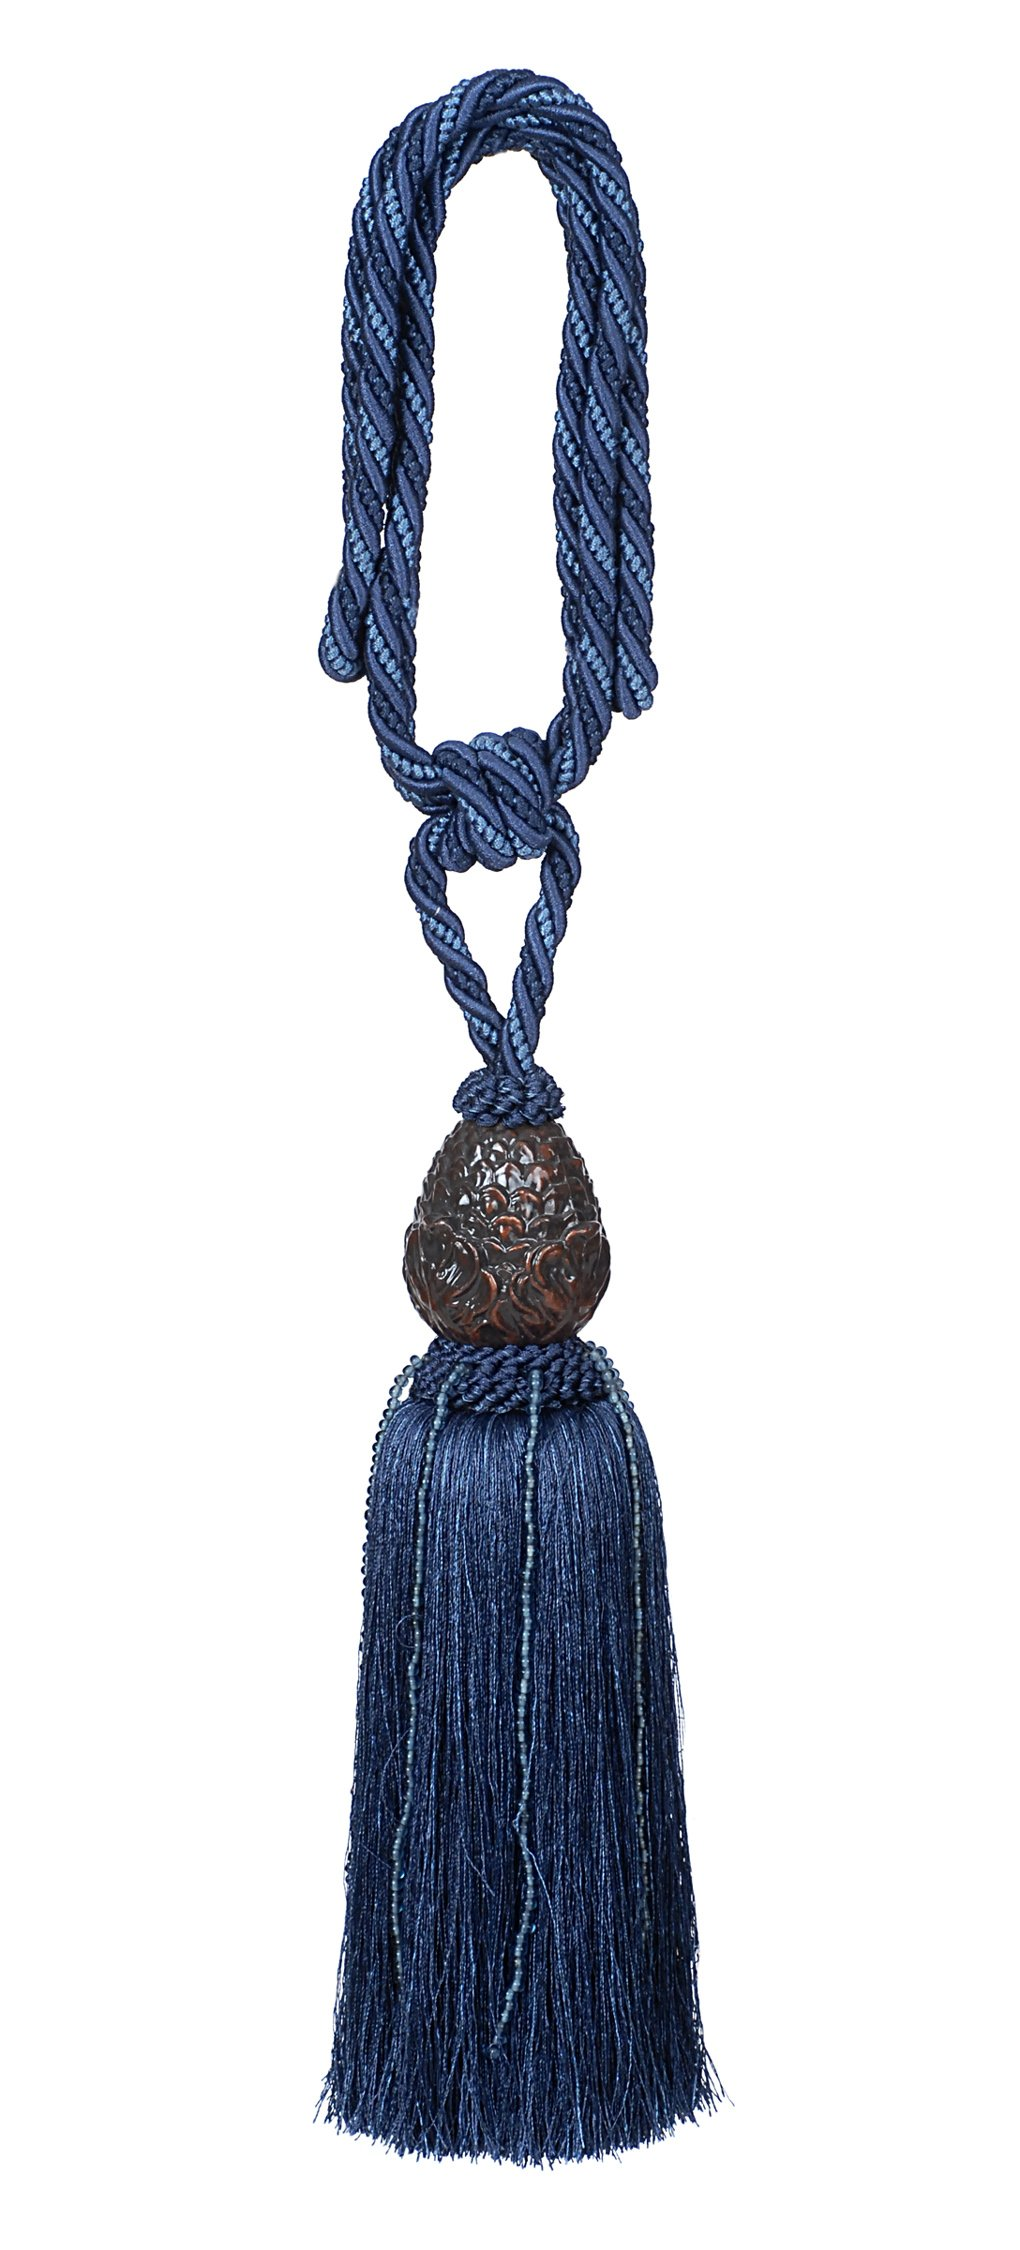 India House 76417 Pineapple Tieback with 12-Inch Single Tassel and 36-Inch Cord, Blue